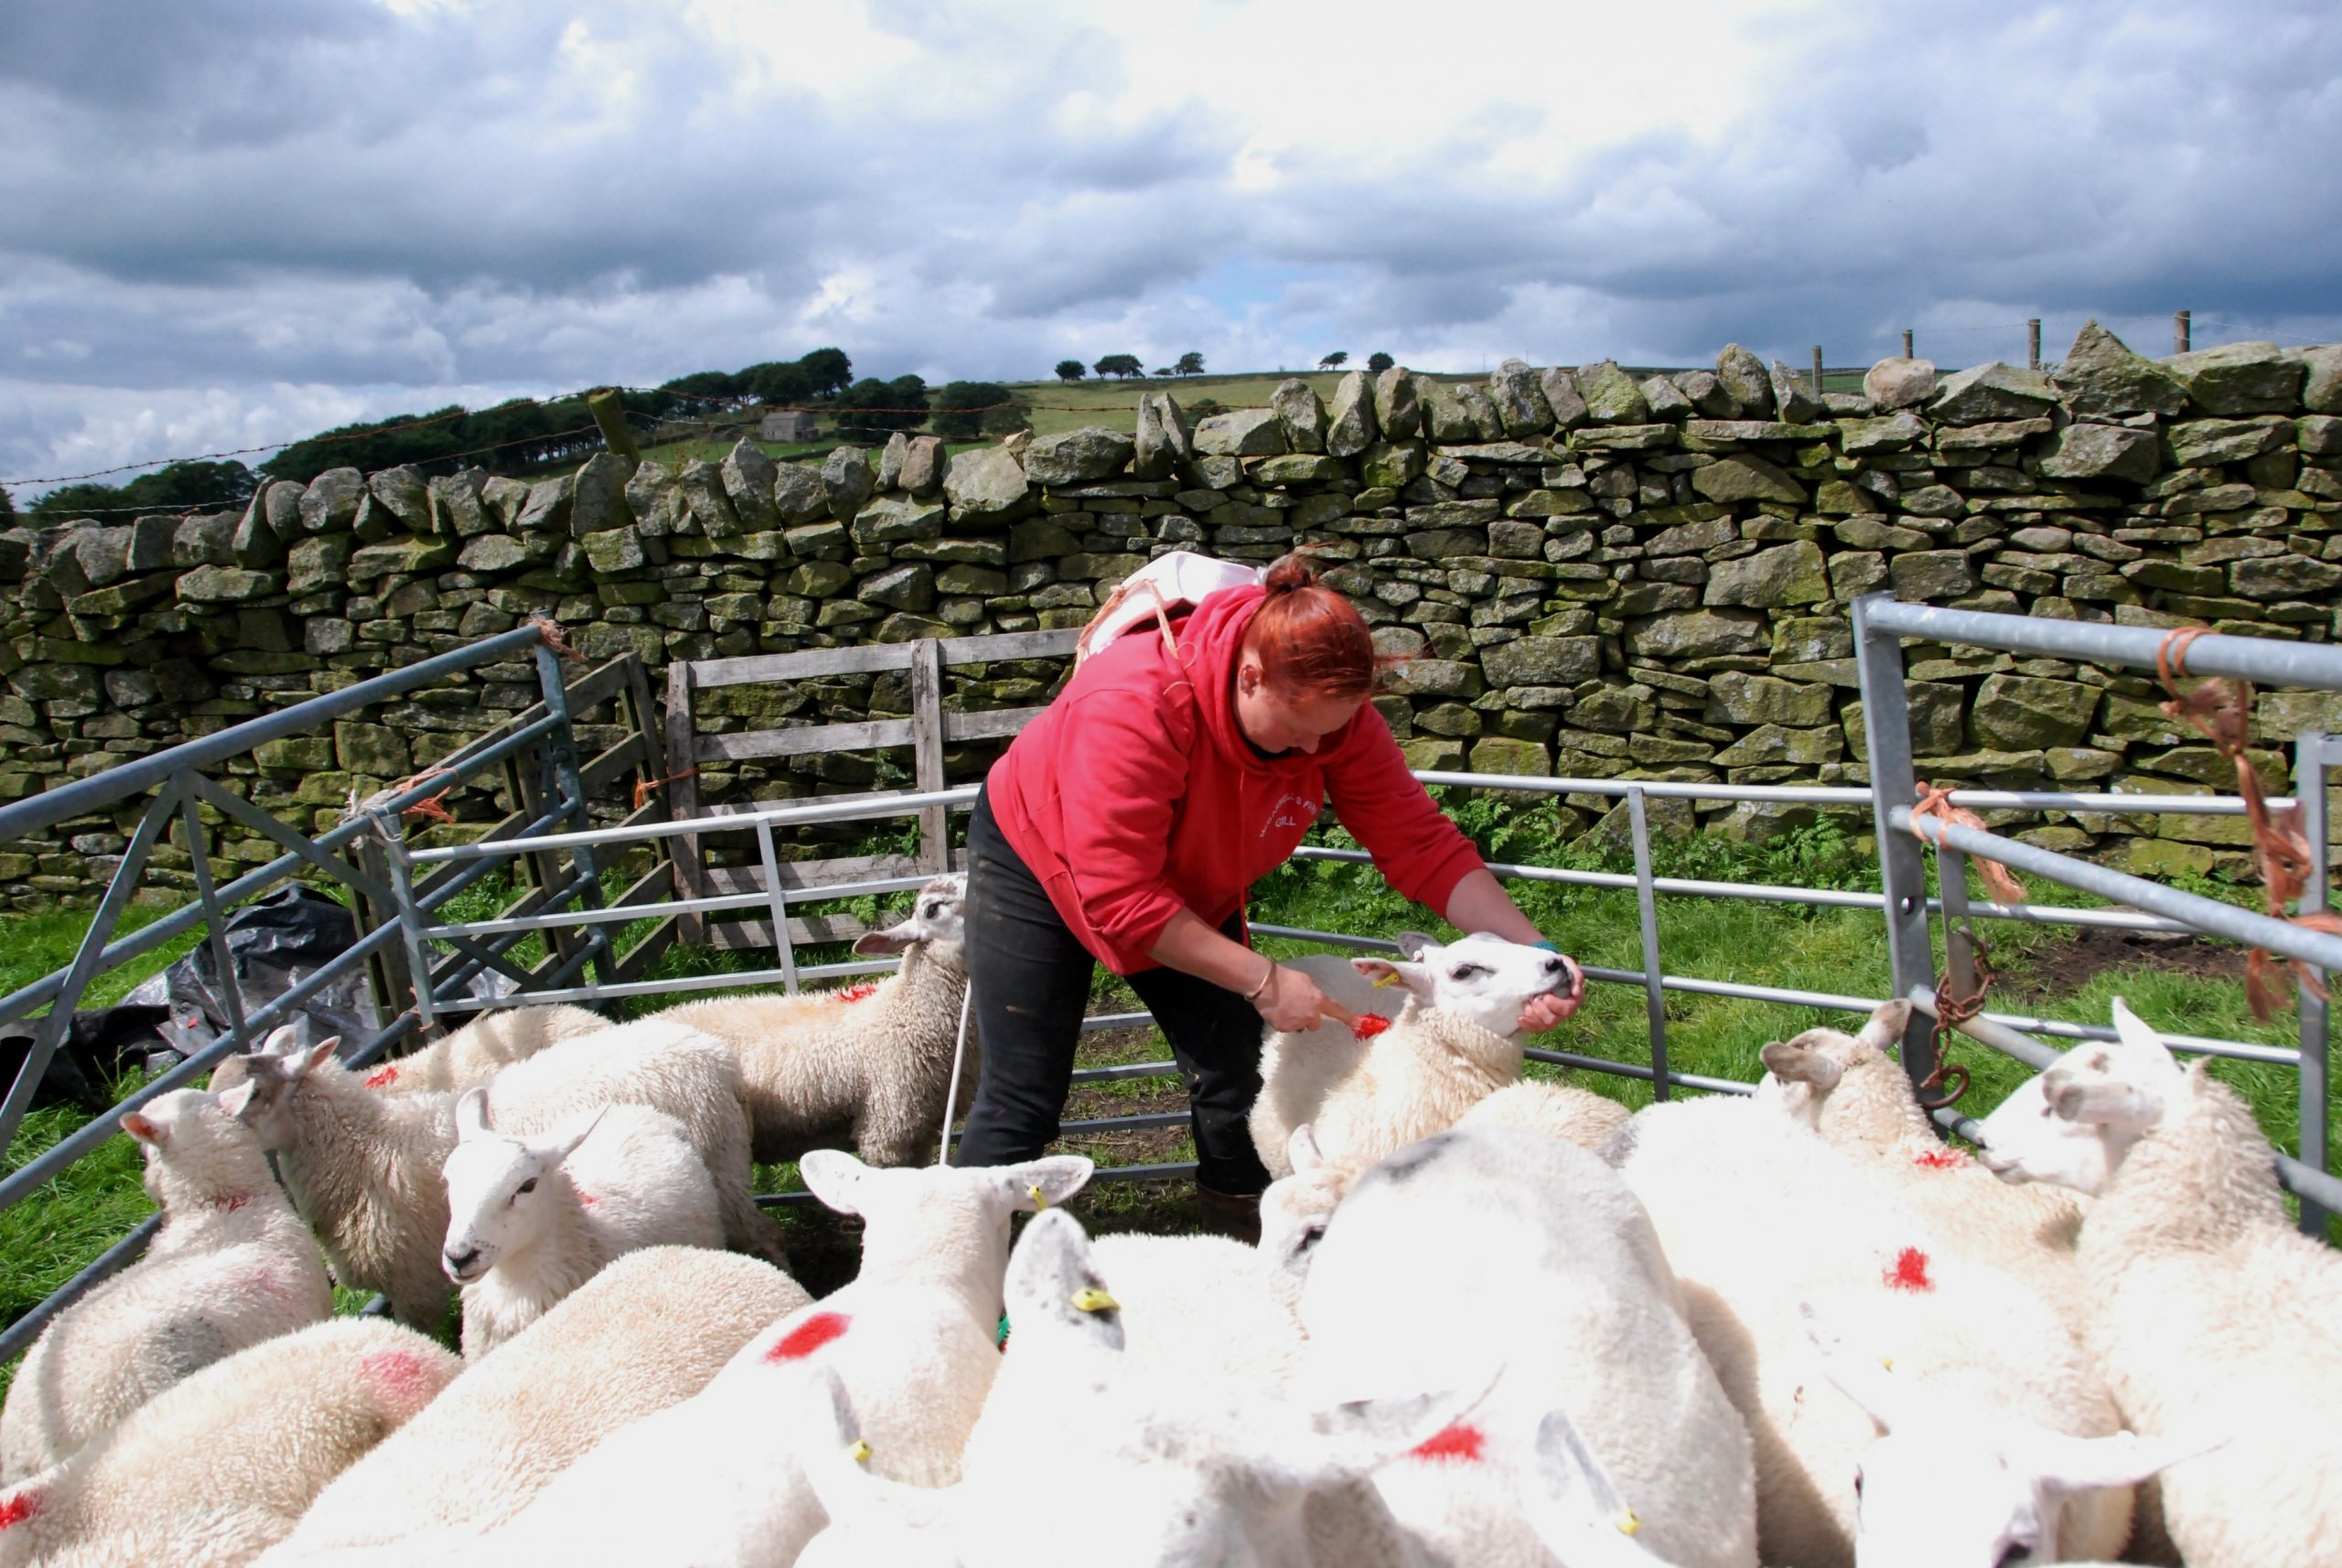 CRAVEN FARMER JOINS CAMPAIGN TO STAMP OUT SHEEP RUSTLING